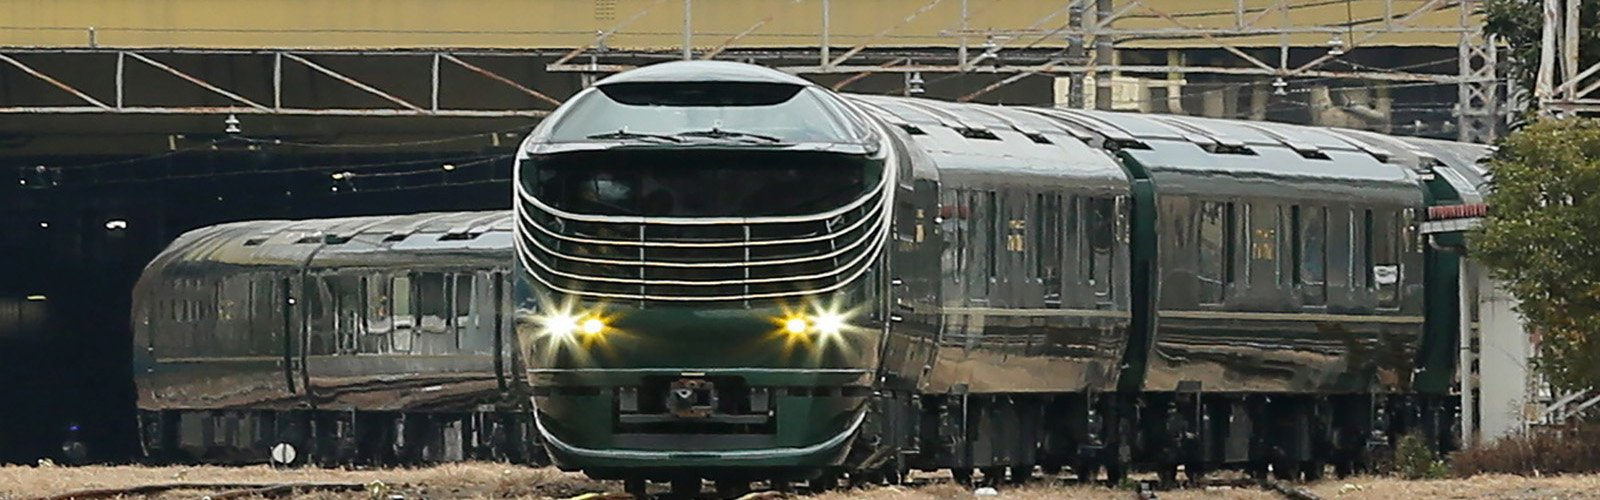 Luxury on the rails in train-mad Japan